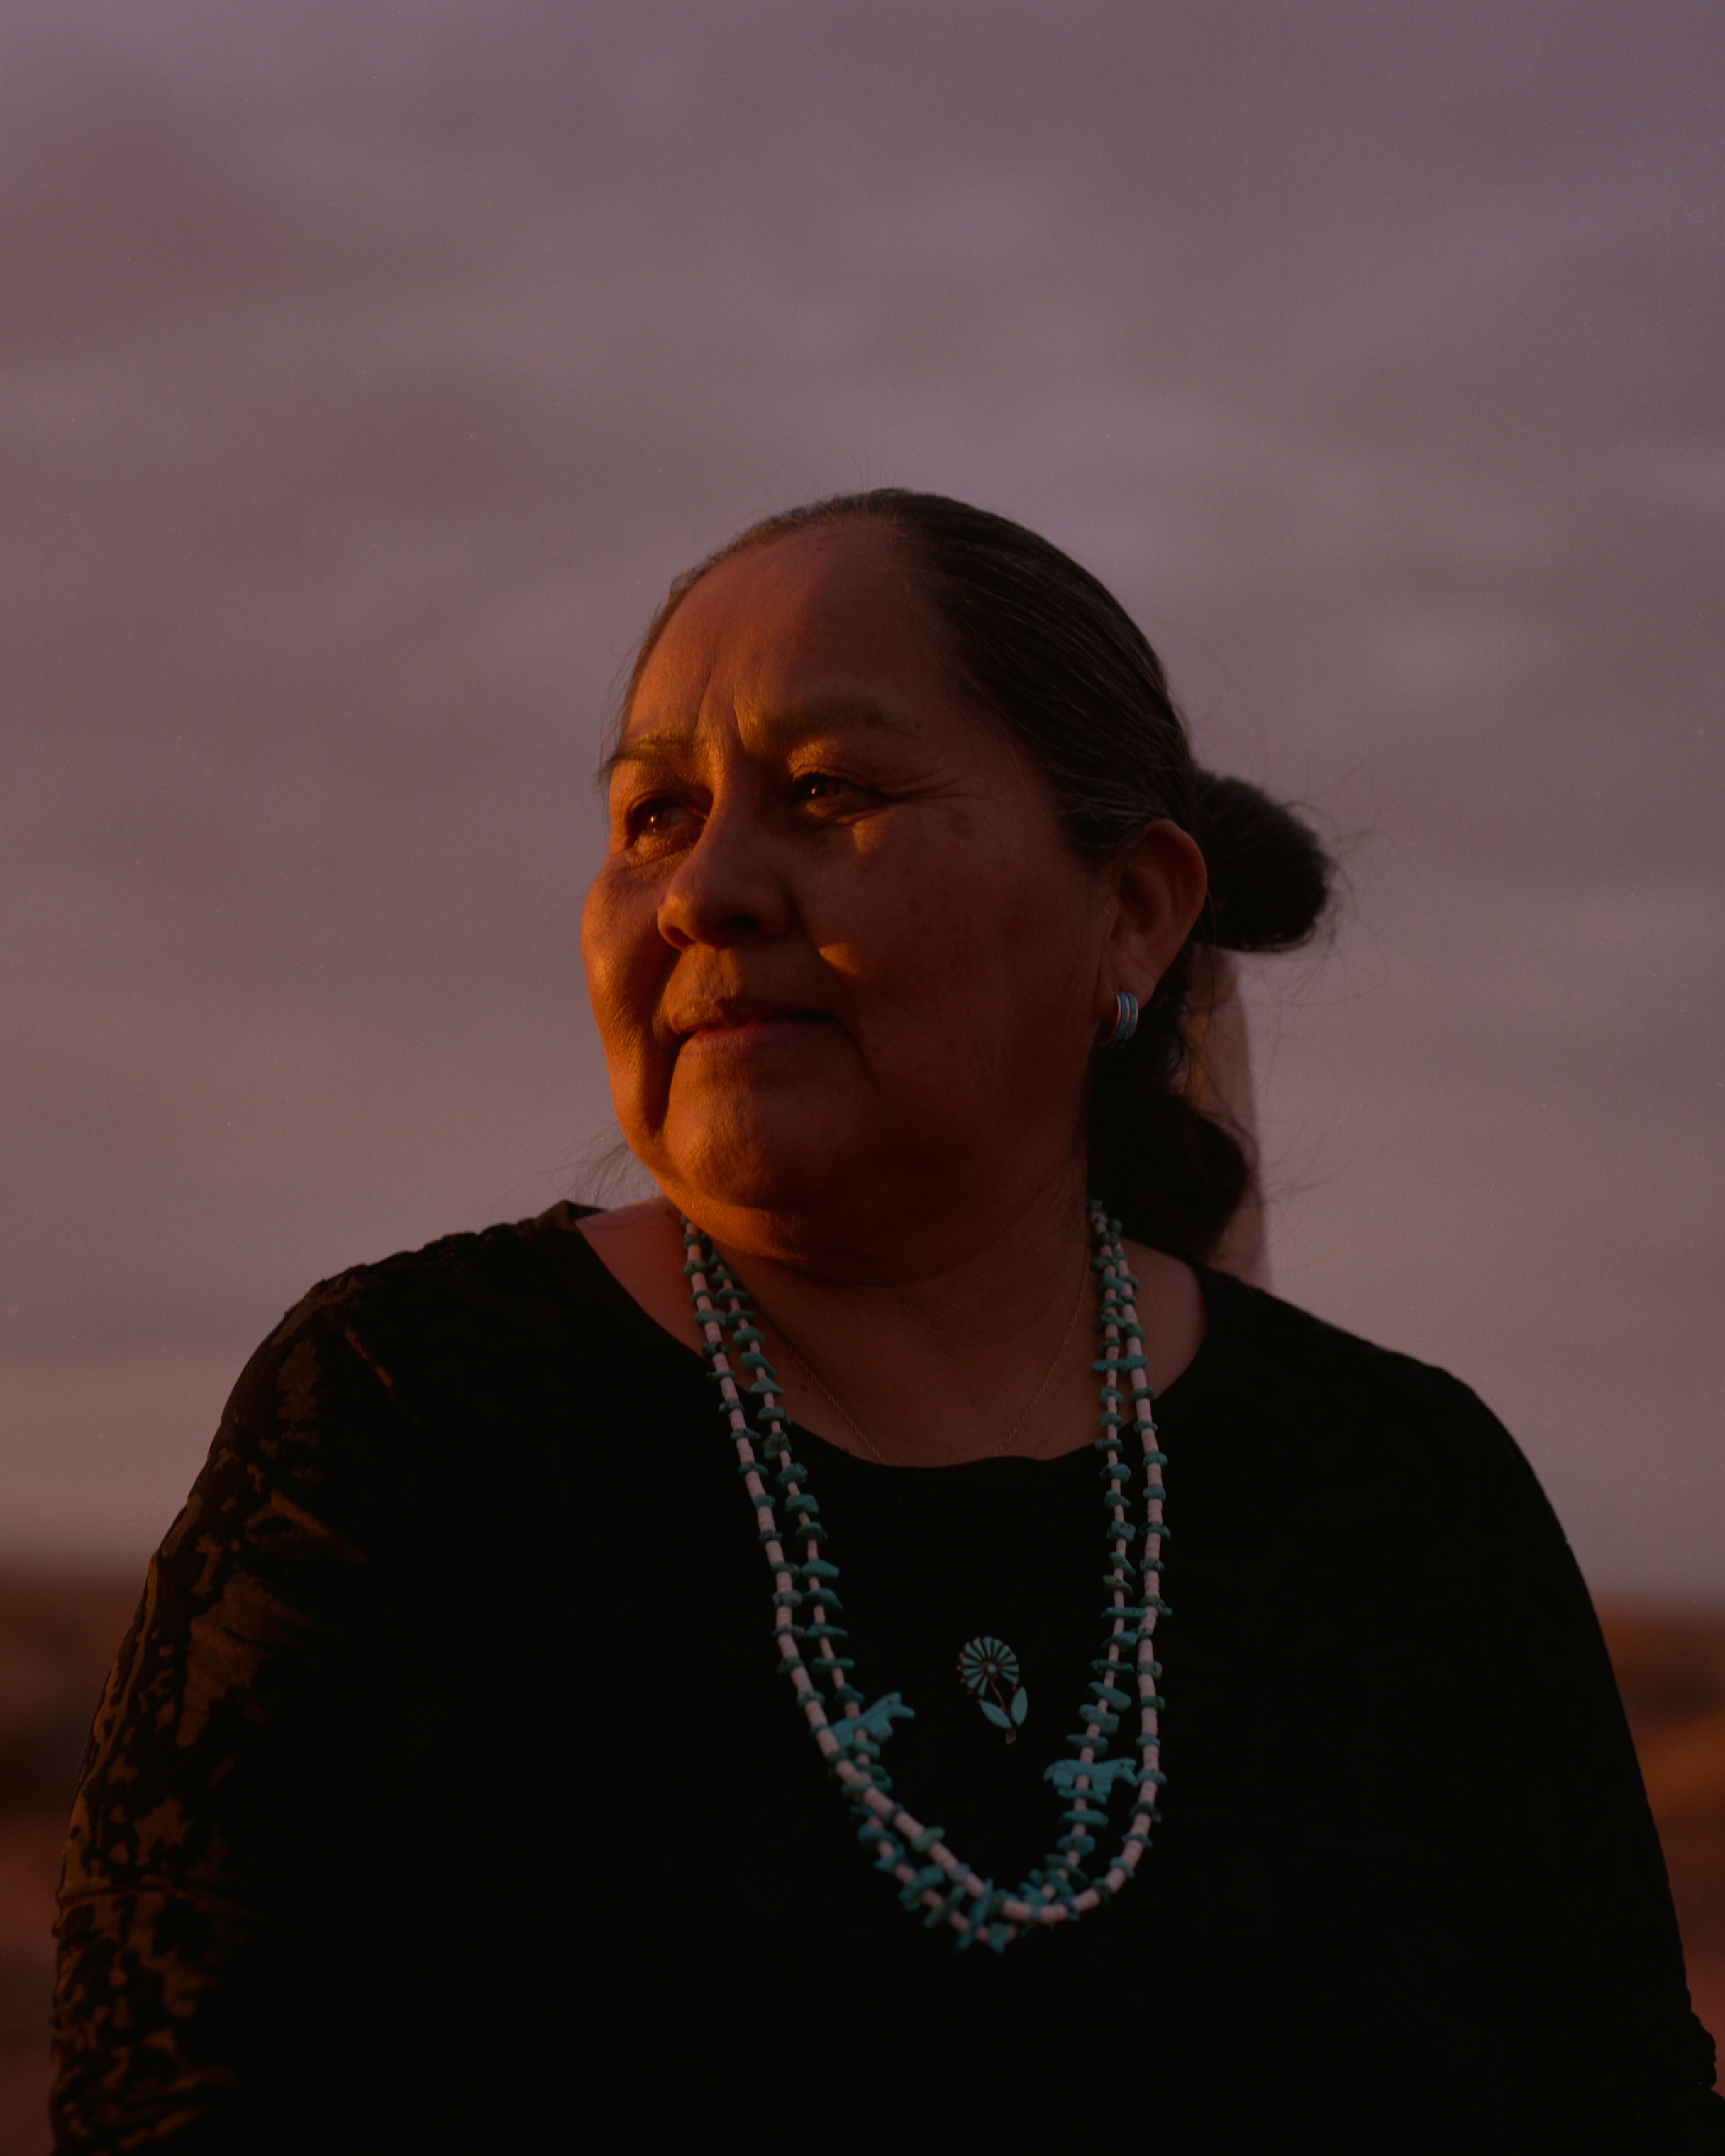 Elouise Wilson is pictured at her home in Monument Valley, on the Navajo reservation. Wilson is the mother of eight and lived with her family in a traditional hogan as recent as 2006. She is the mother of Cynthia Wilson, a Traditional Foods Program Director for the Utah Dine Bikeyah who is also helping to protect Bears Ears and its cultural traditions.